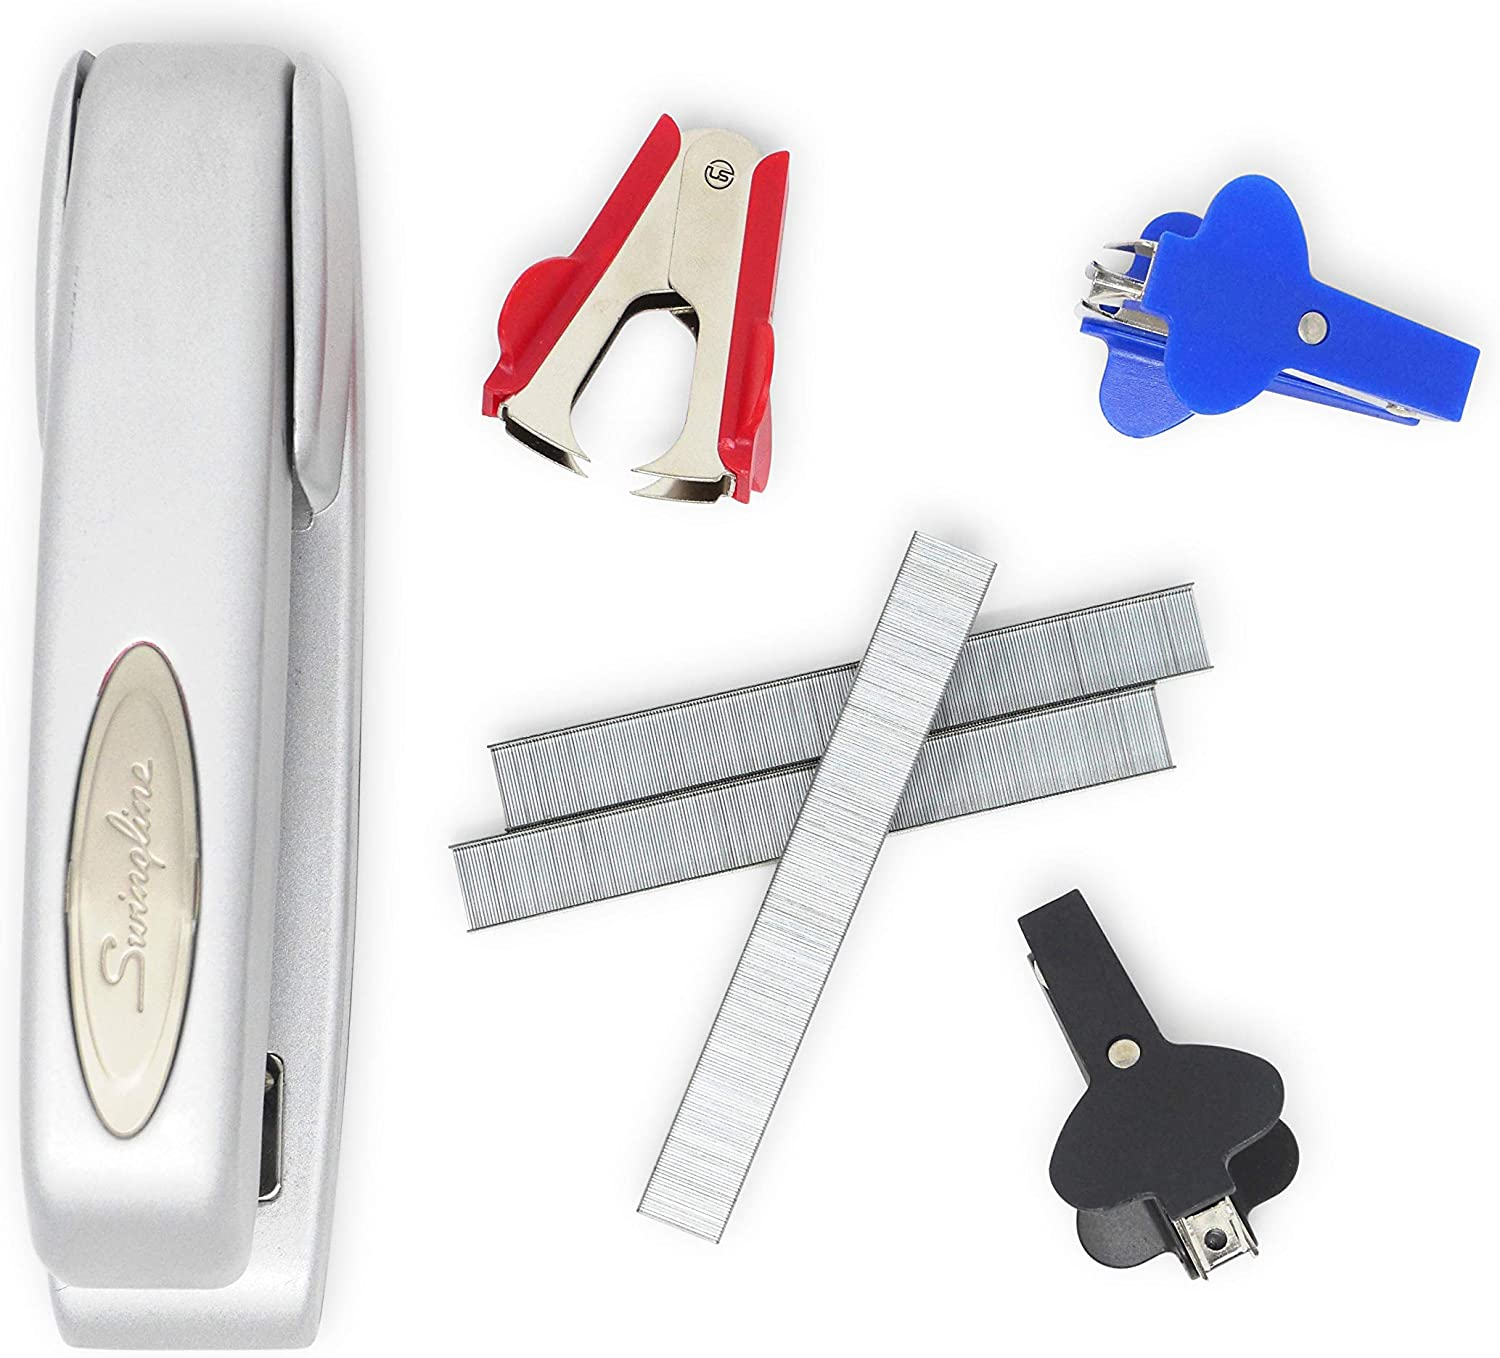 Heavy Duty Staple Remover Tack Lifter, Ultimate Stationery, Pinch Jaw Style, 3 Pack : Office Products